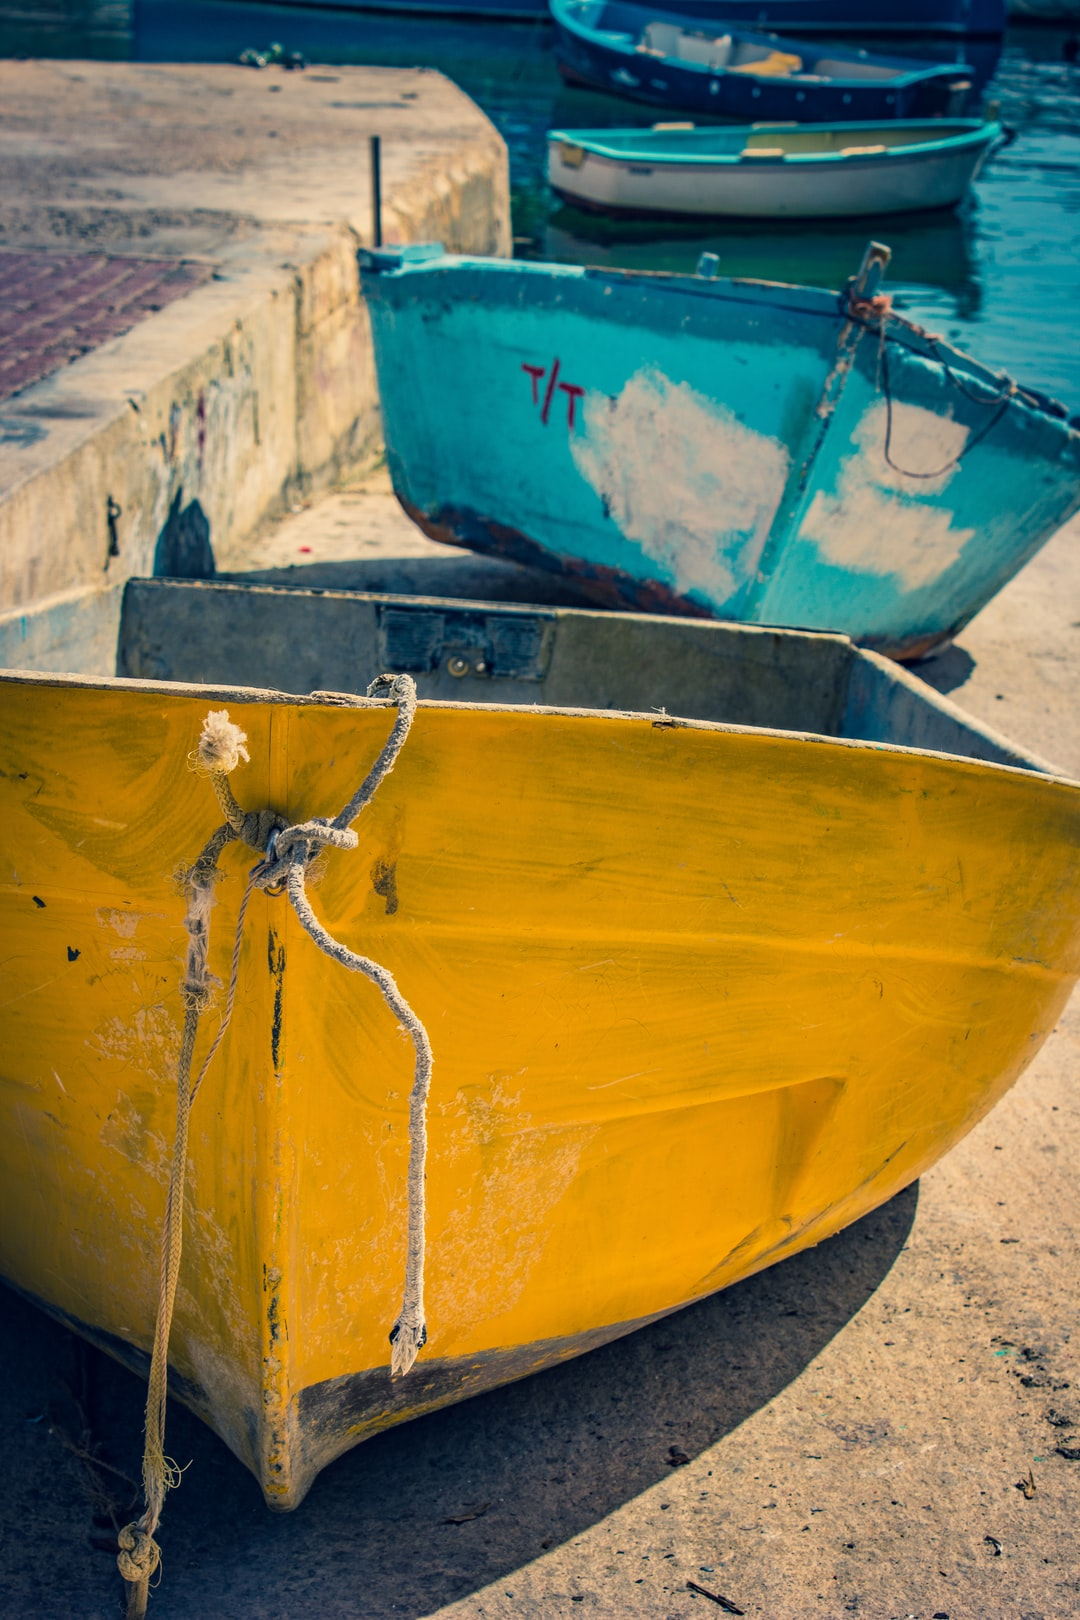 Simple little fishing boats that are hand painted and have a variety of colour applied